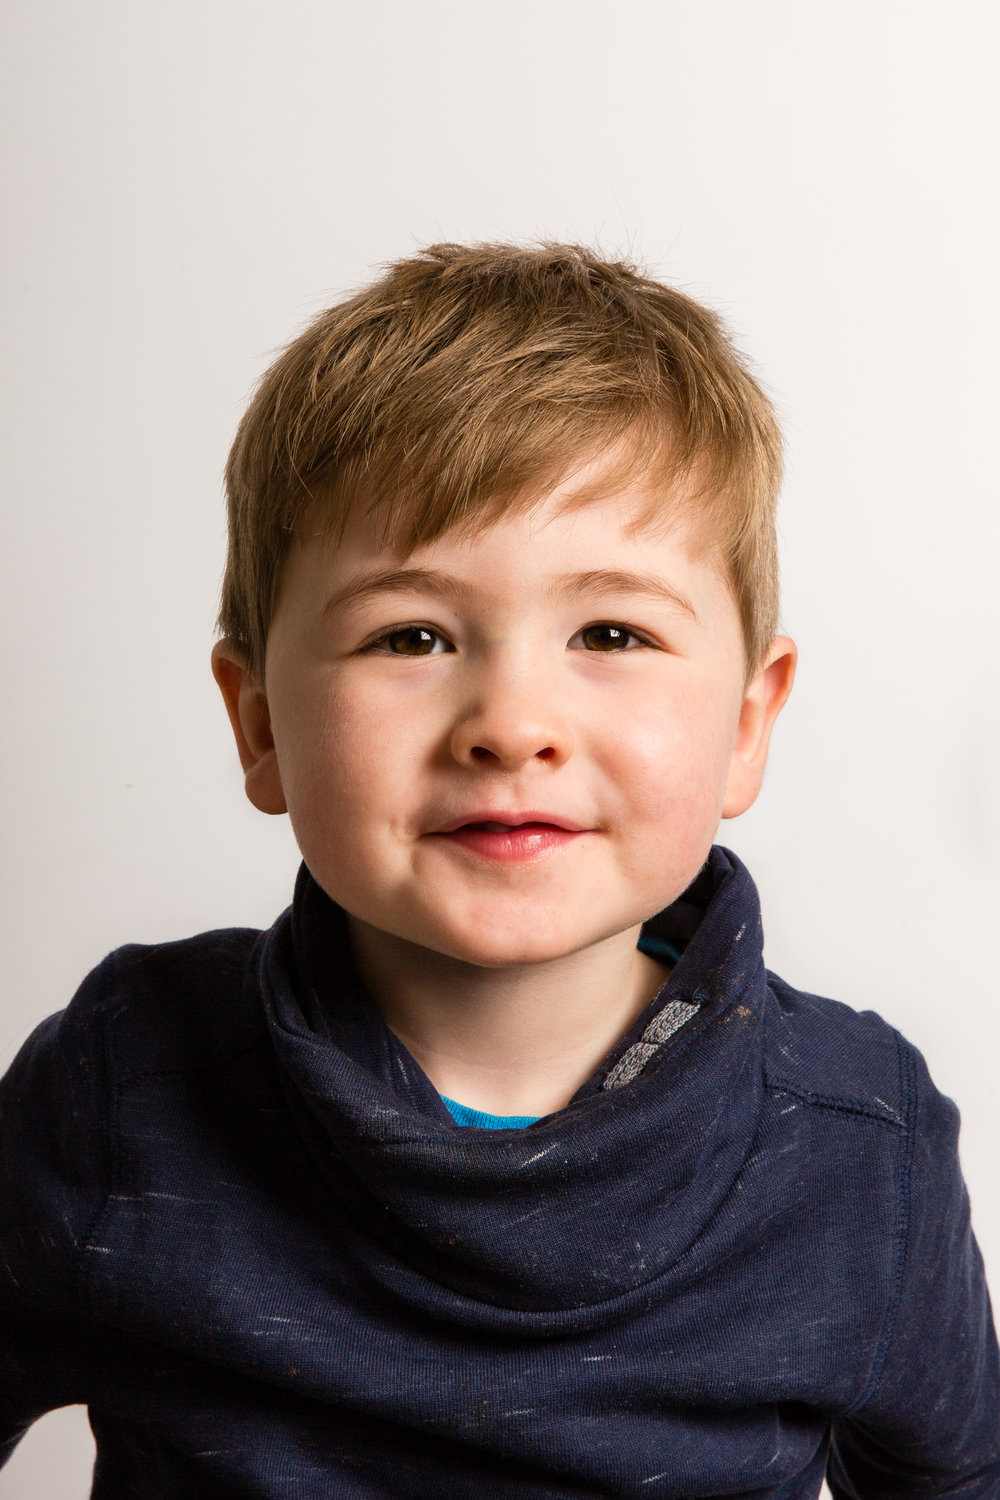 Professional Children Headshots London and Surrey